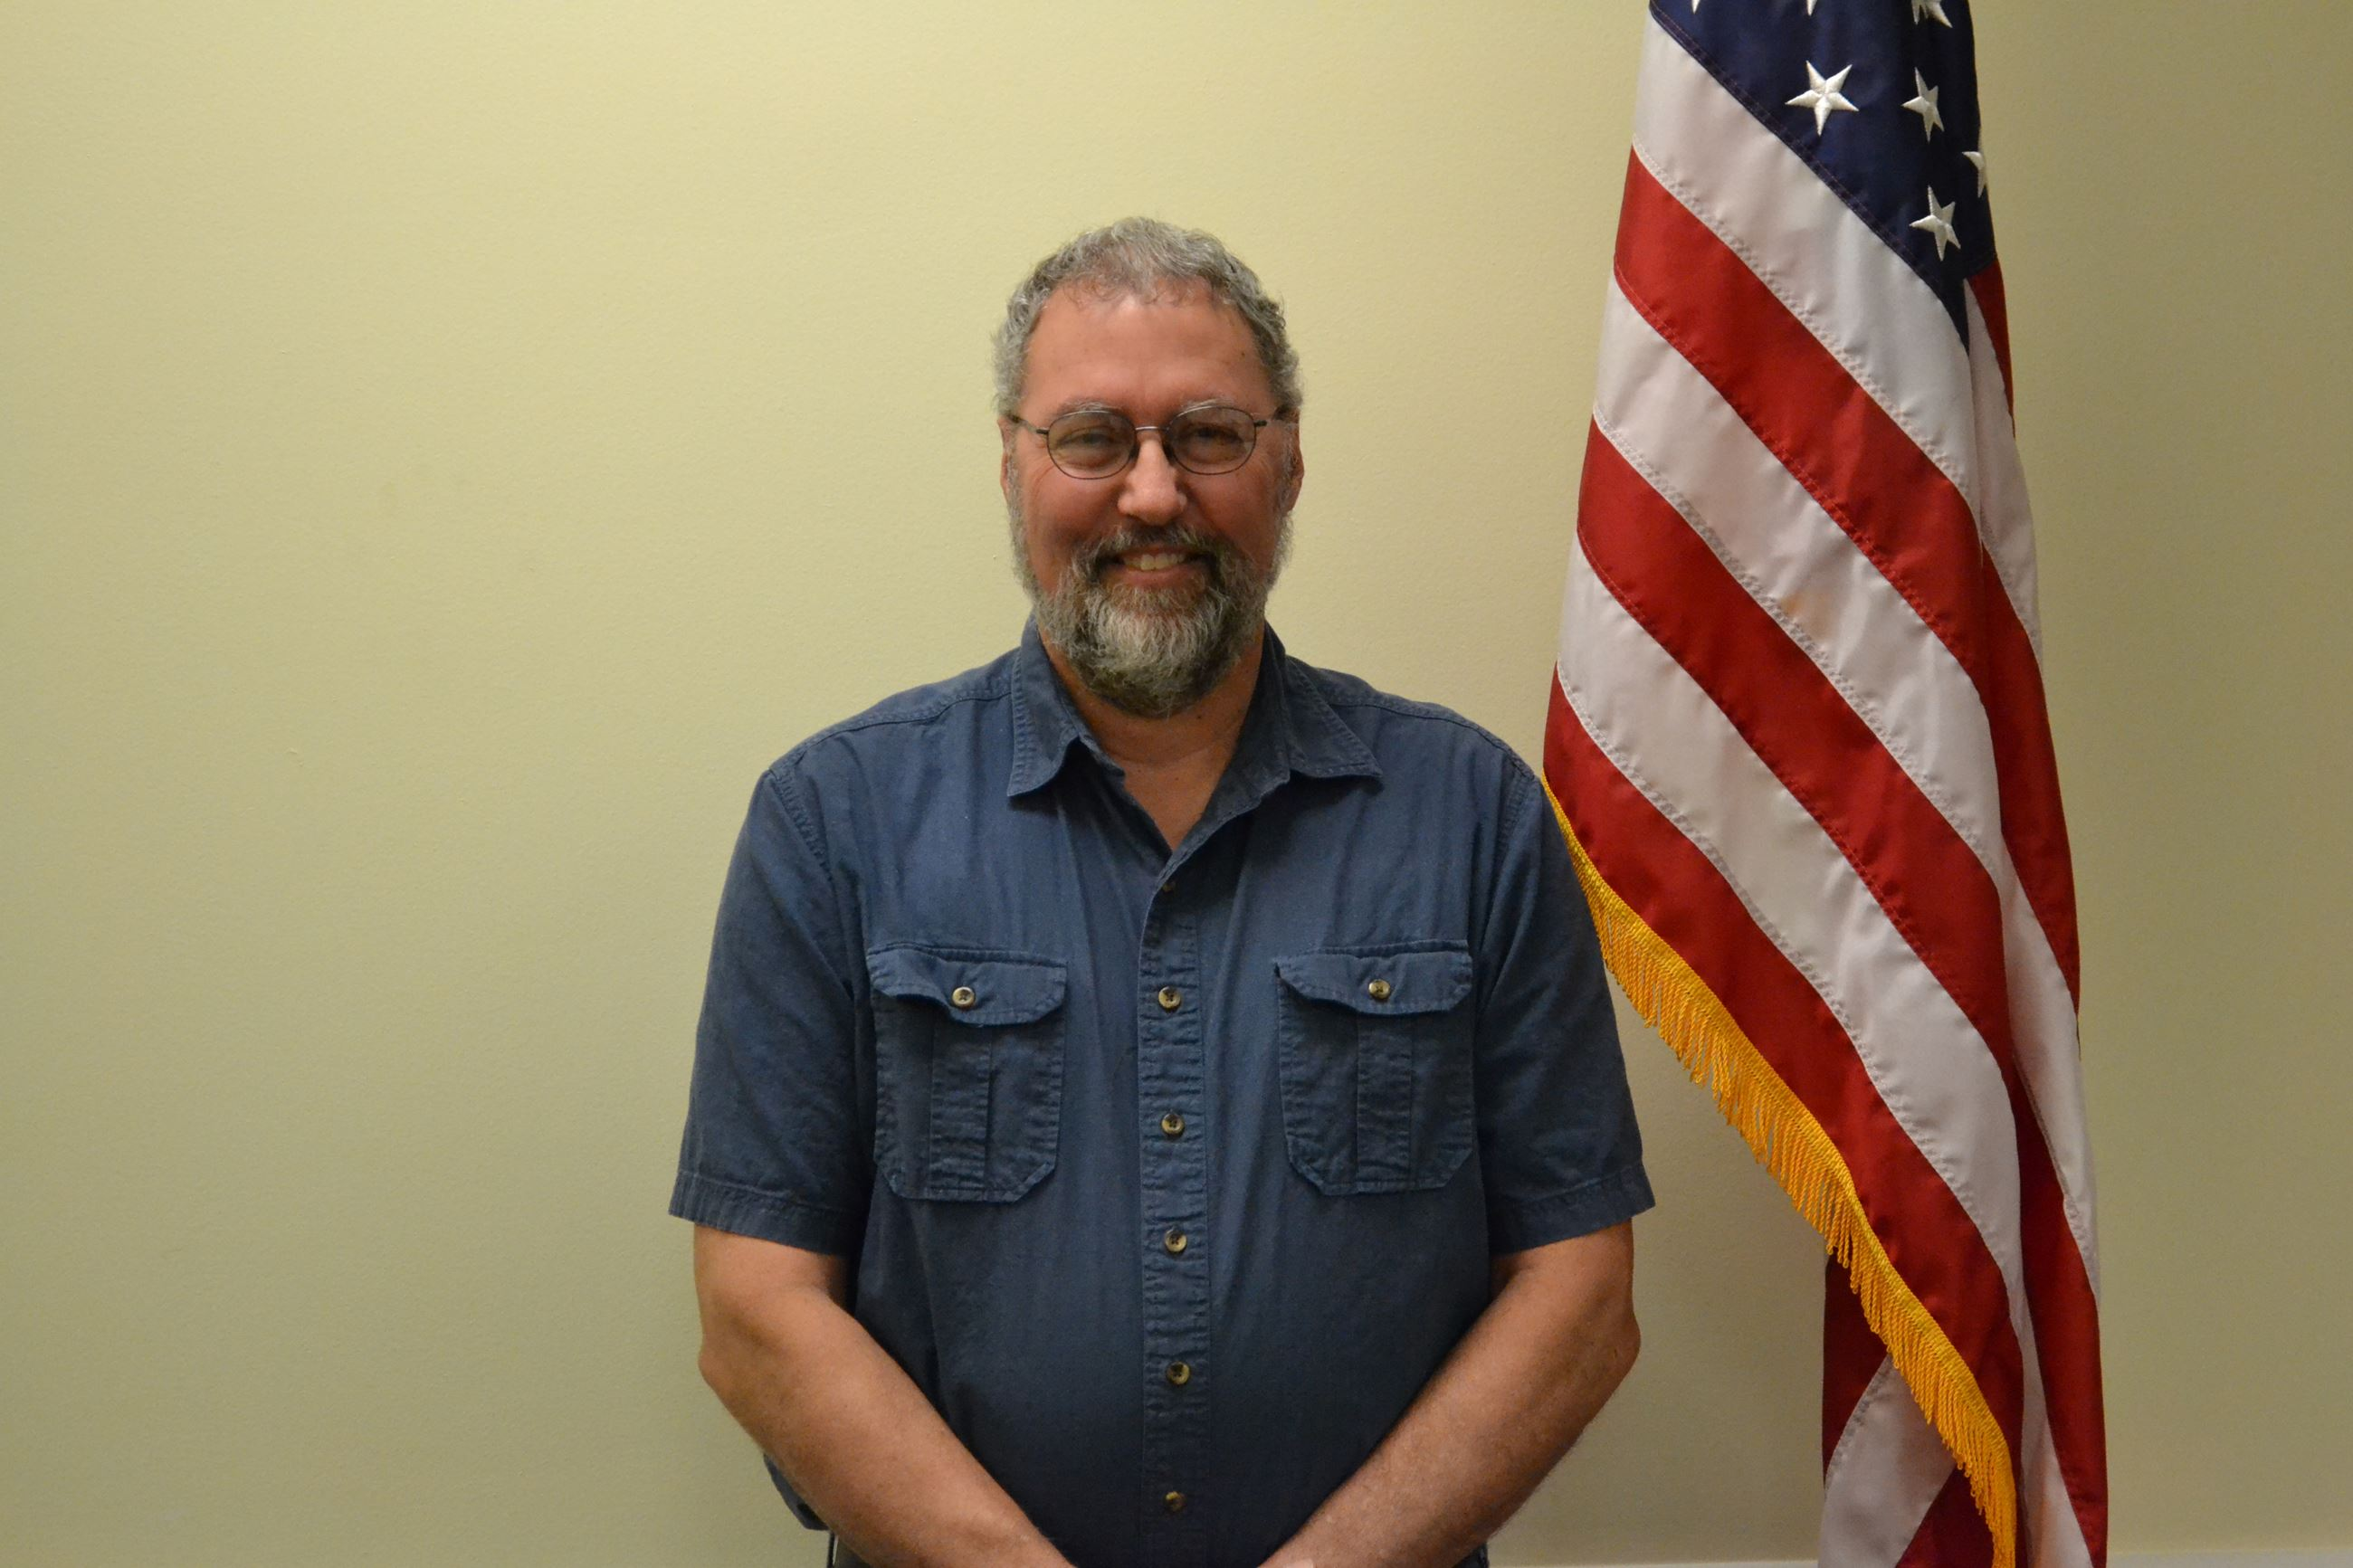 Mayor - David Borer (Image)